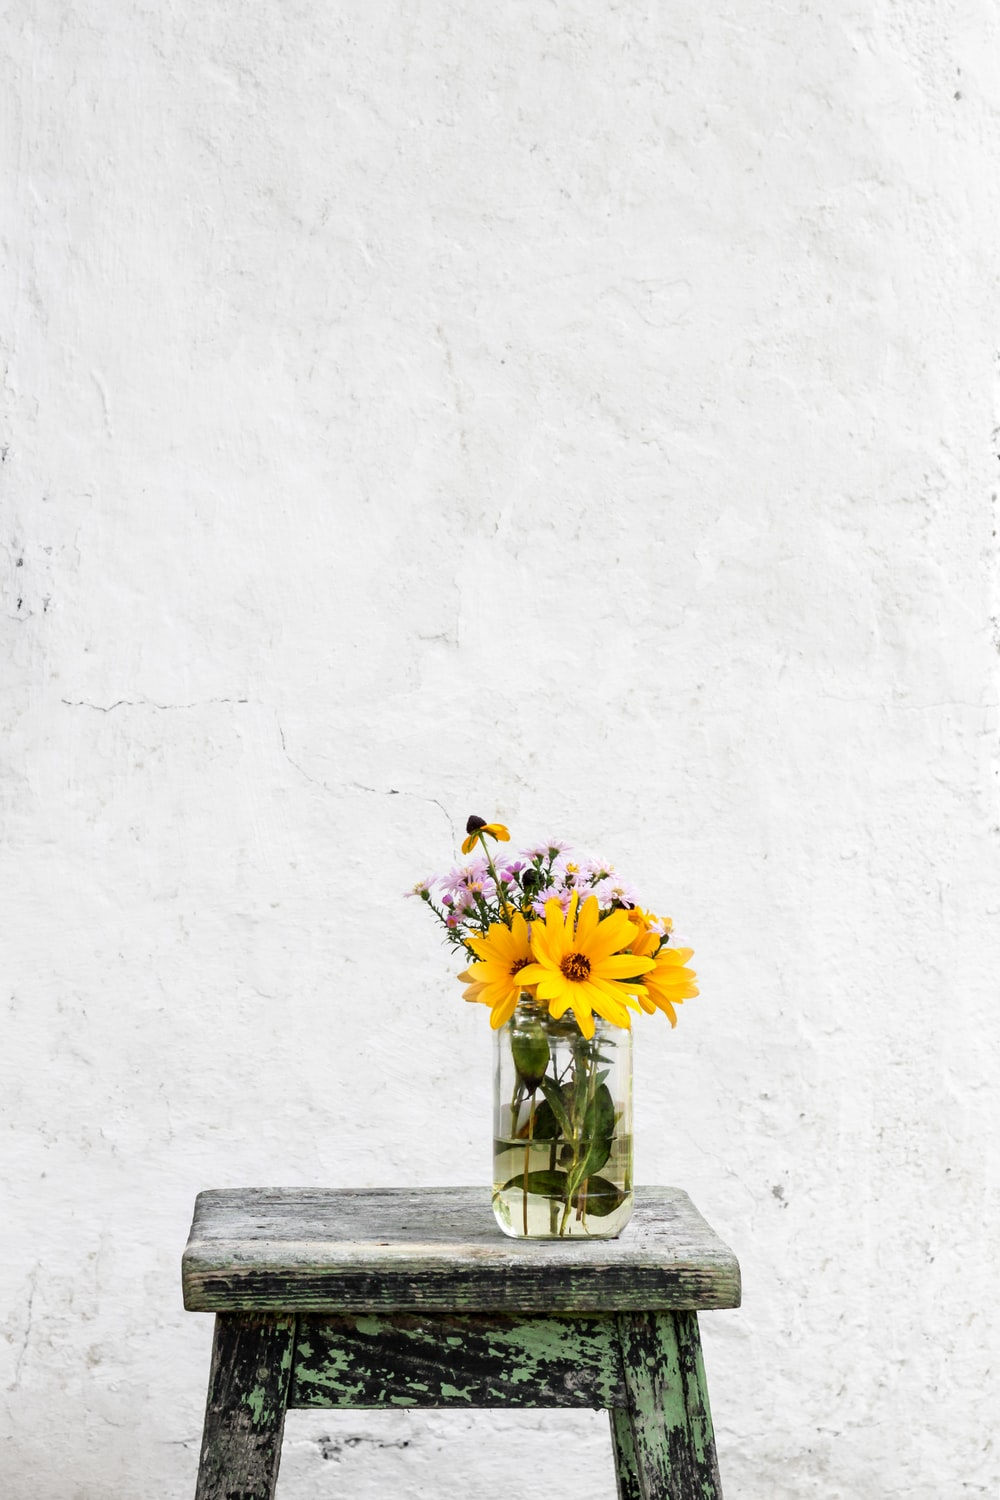 sunflower with clear glass vase on gray table